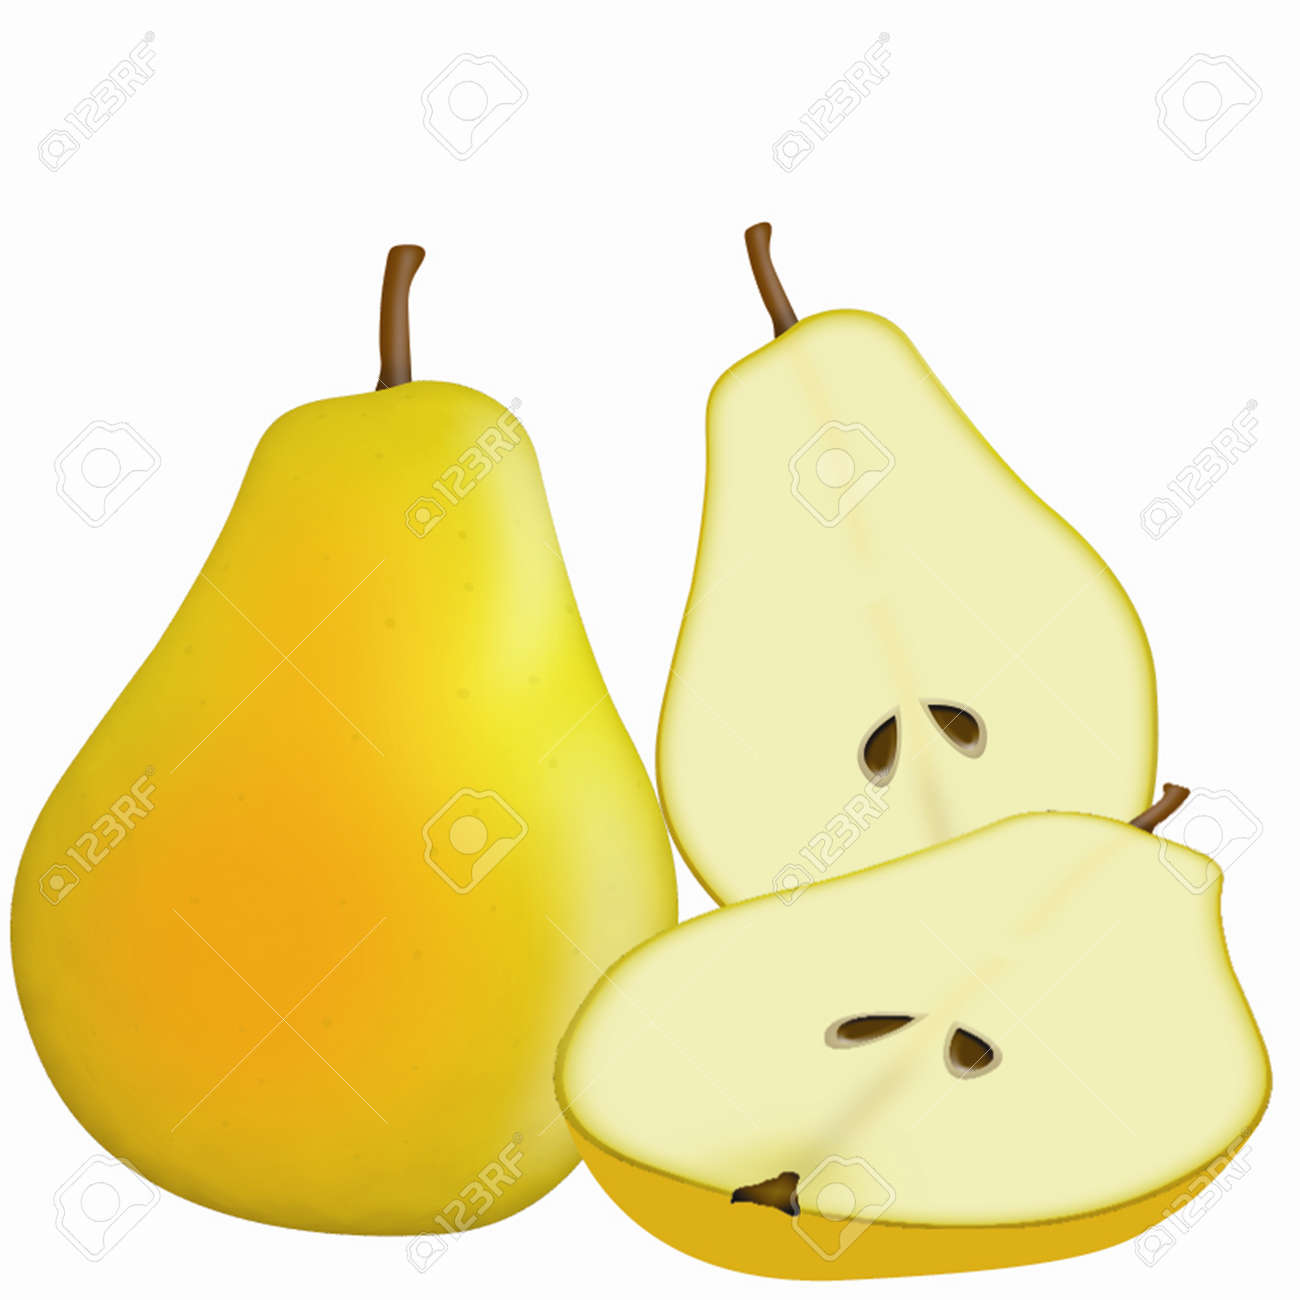 illustration of detailed yellow pear on white background Stock Vector - 16762314